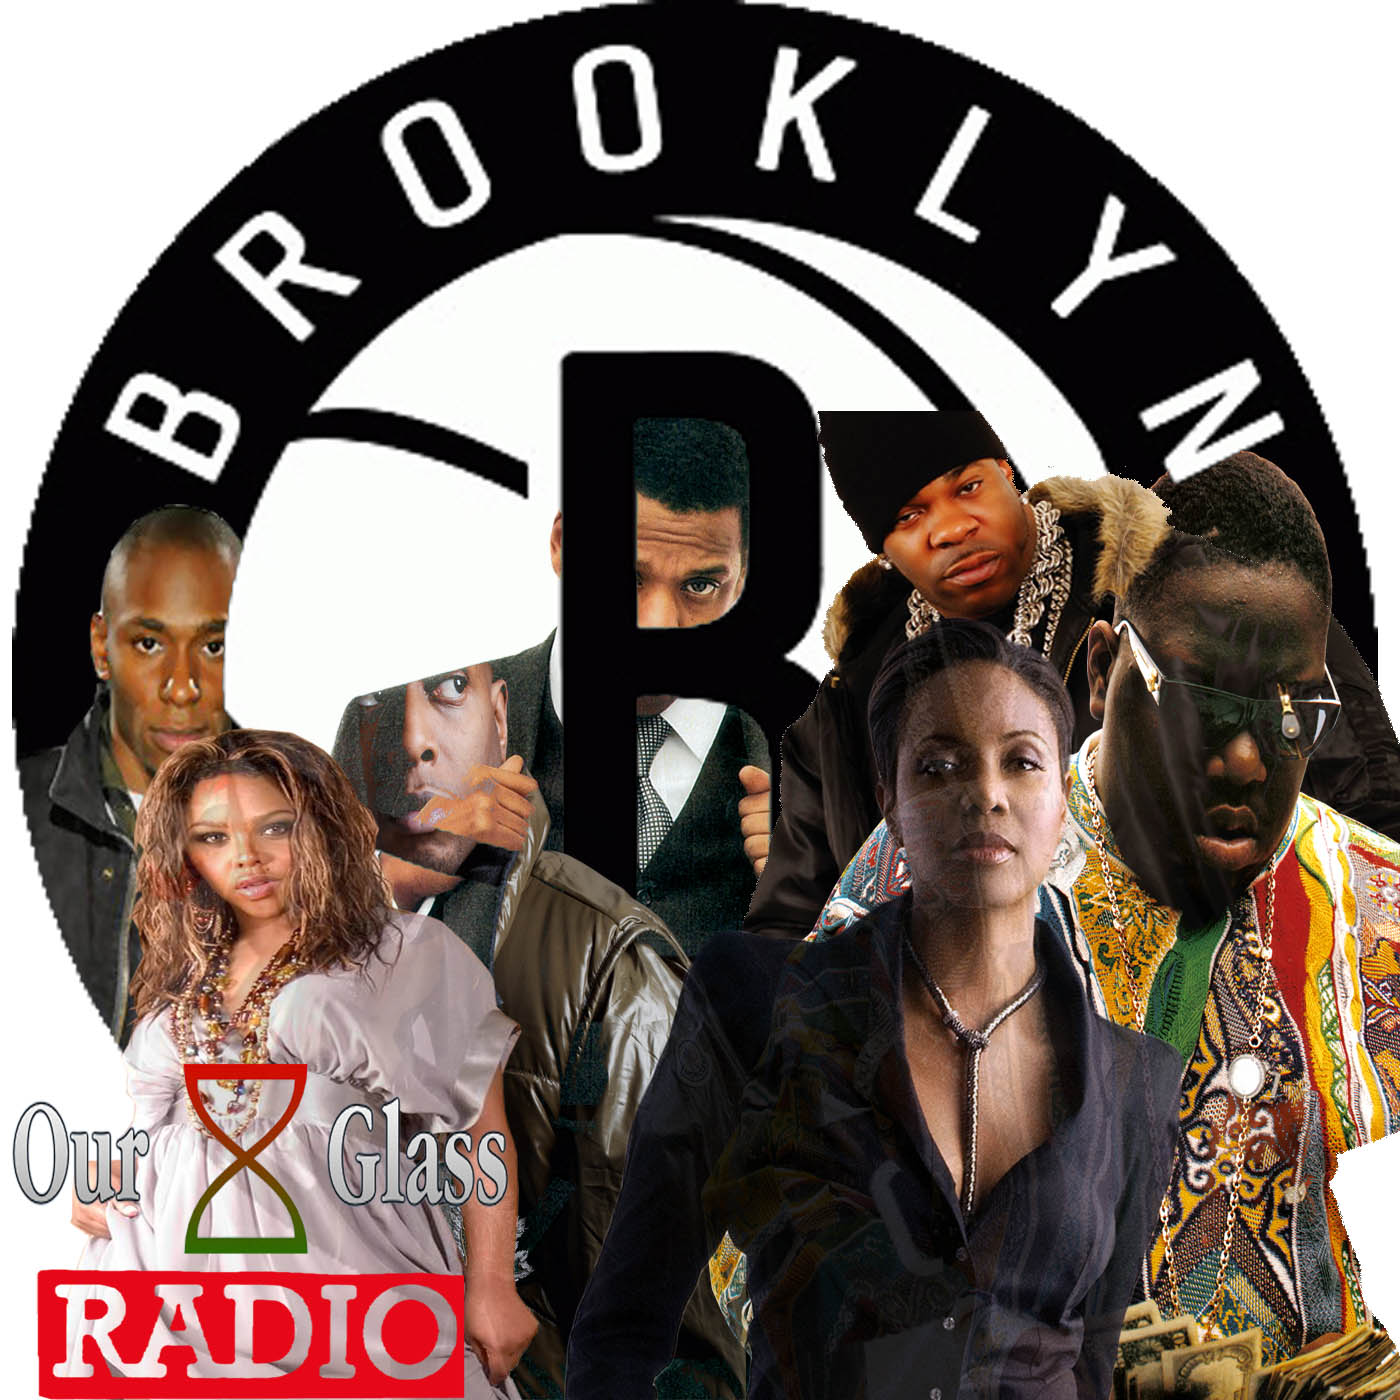 OurGlass Radio – 132 #brooklyn #hiphop